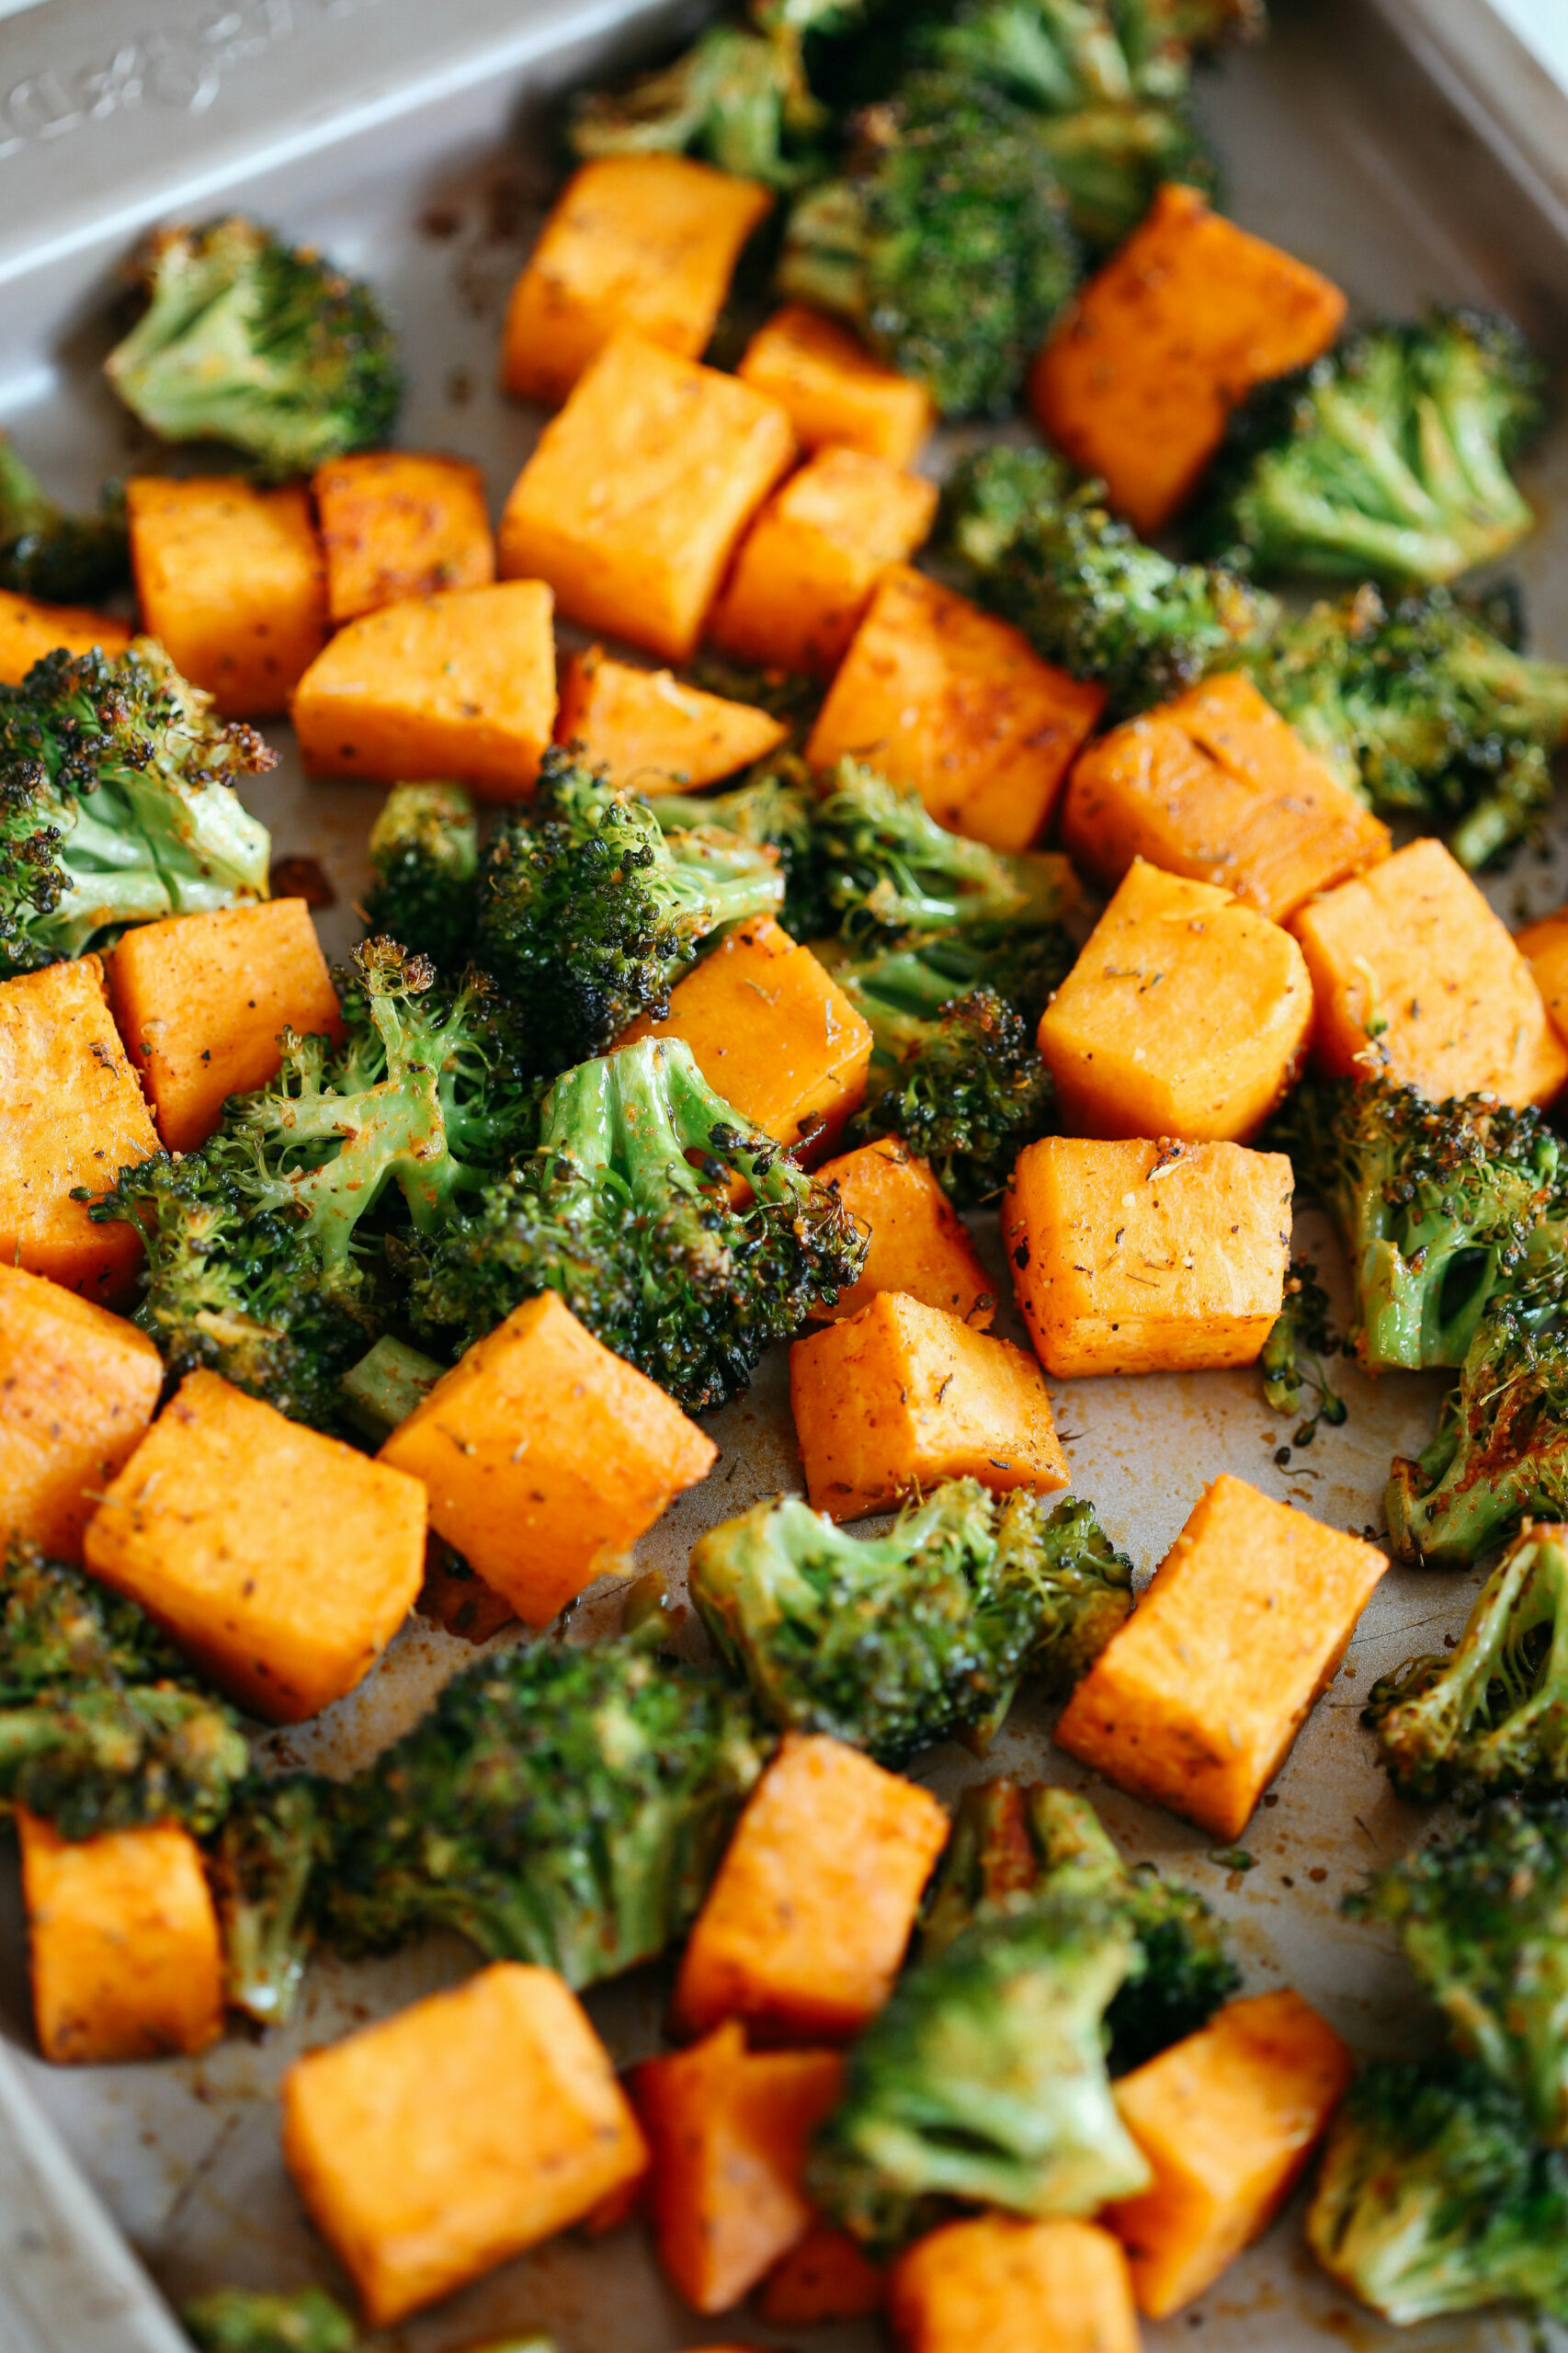 Perfectly Roasted Broccoli & Sweet Potatoes - Healthy Recipes Roasted Vegetables